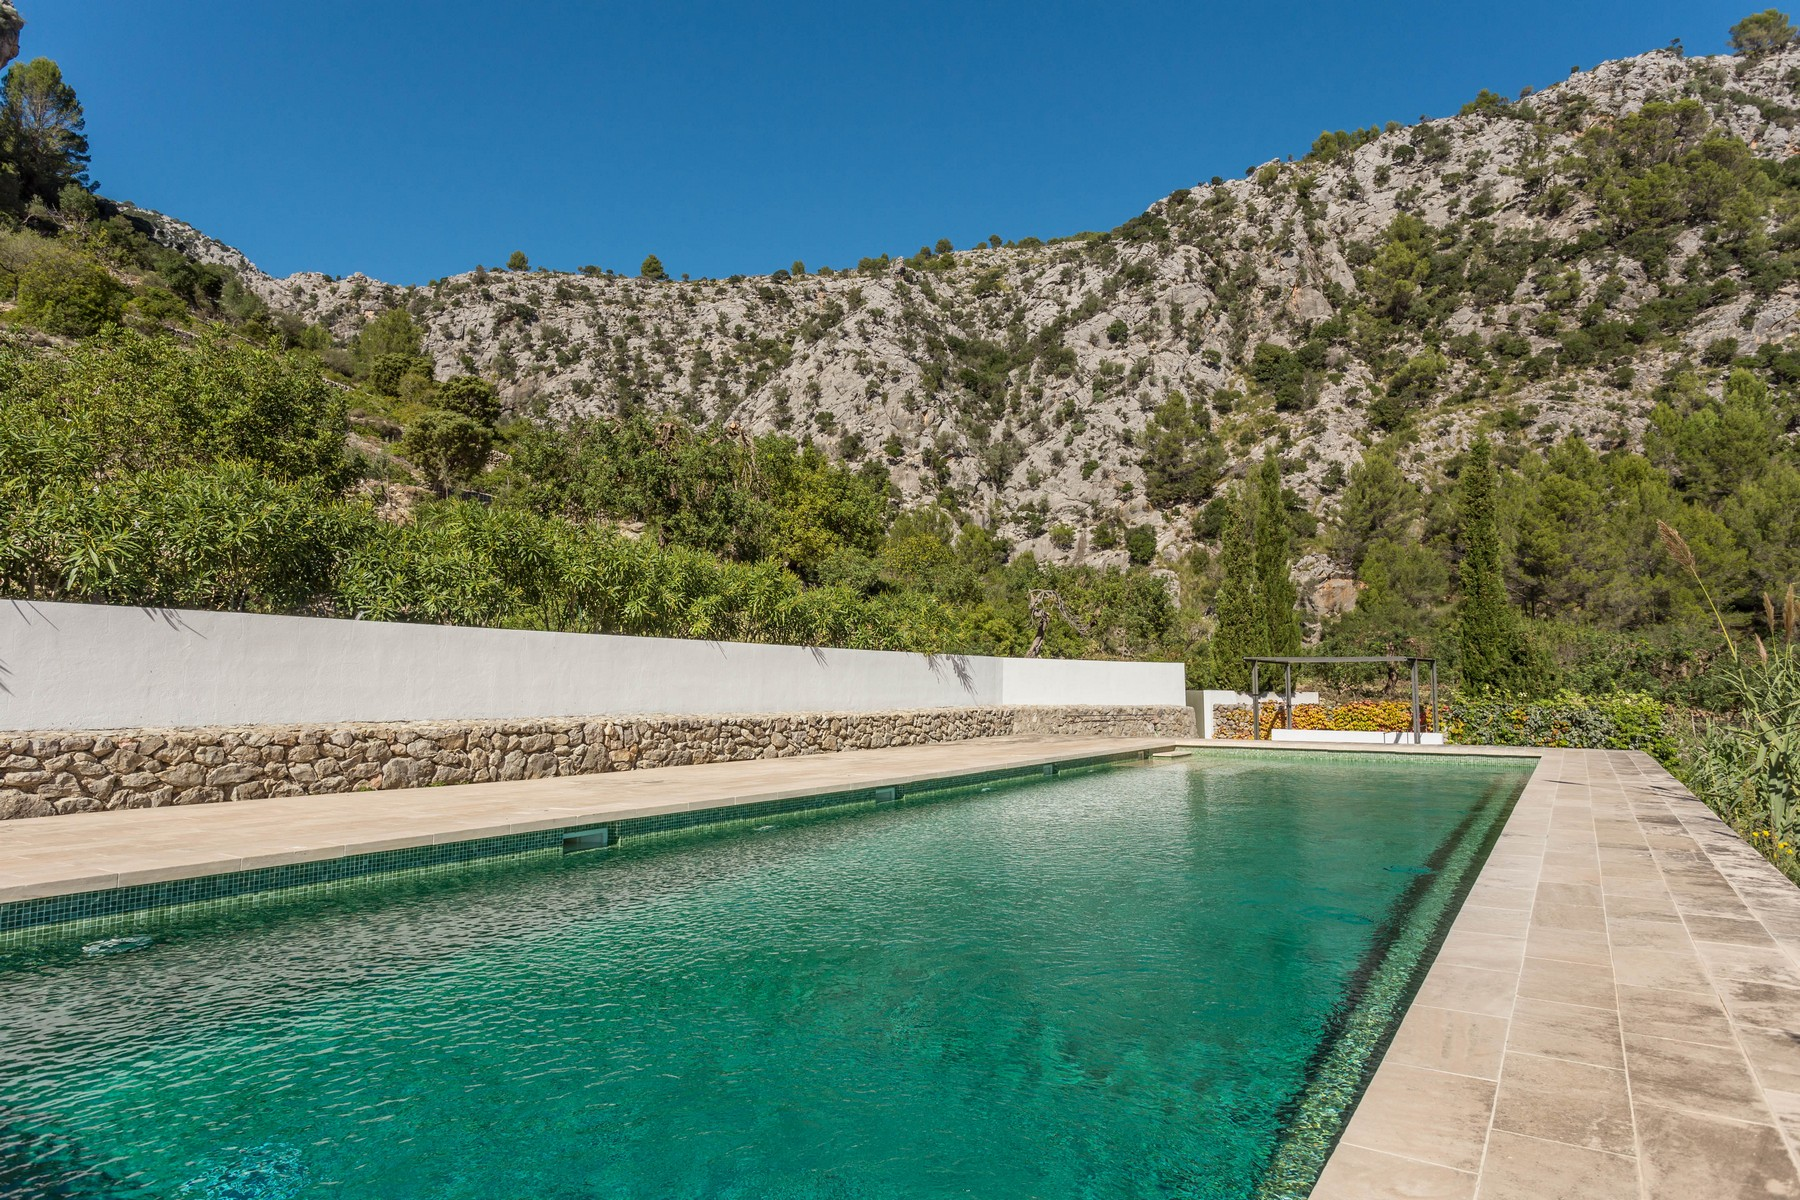 Single Family Home for Sale at Idyllic manor in the mountains Selva, Mallorca, 07013 Spain